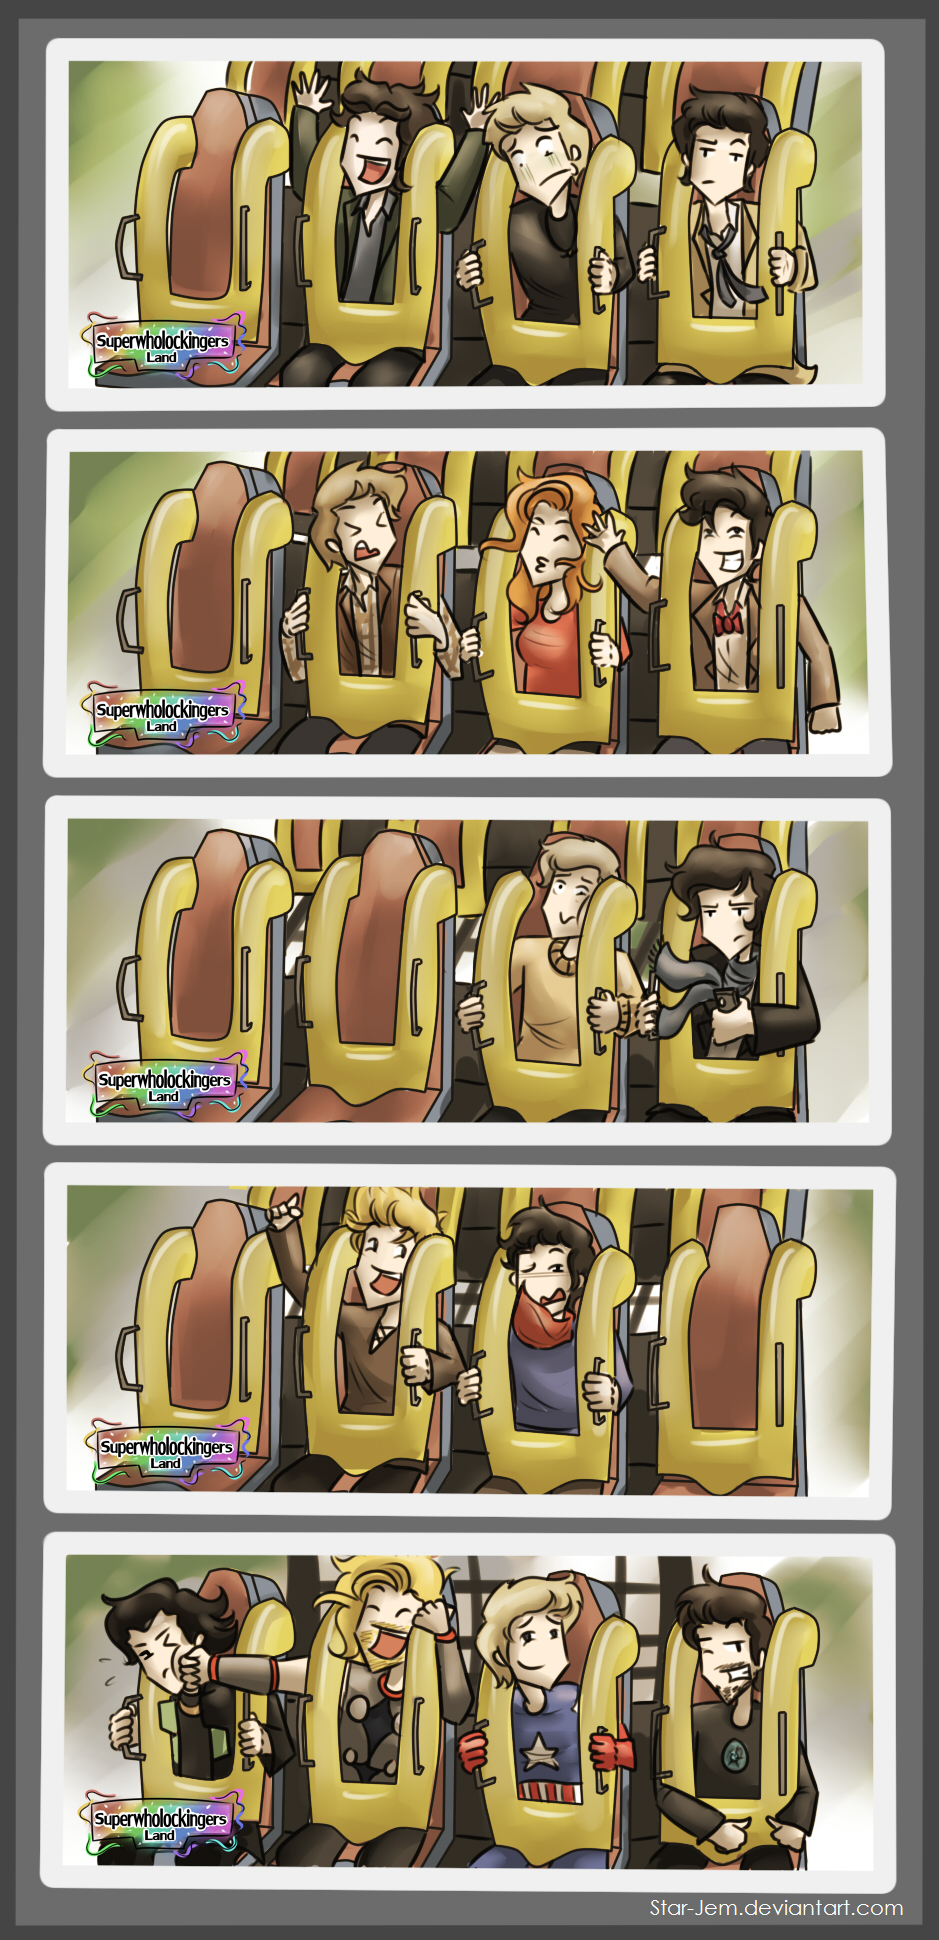 Superwholockingers - roller coaster rides by Star-Jem